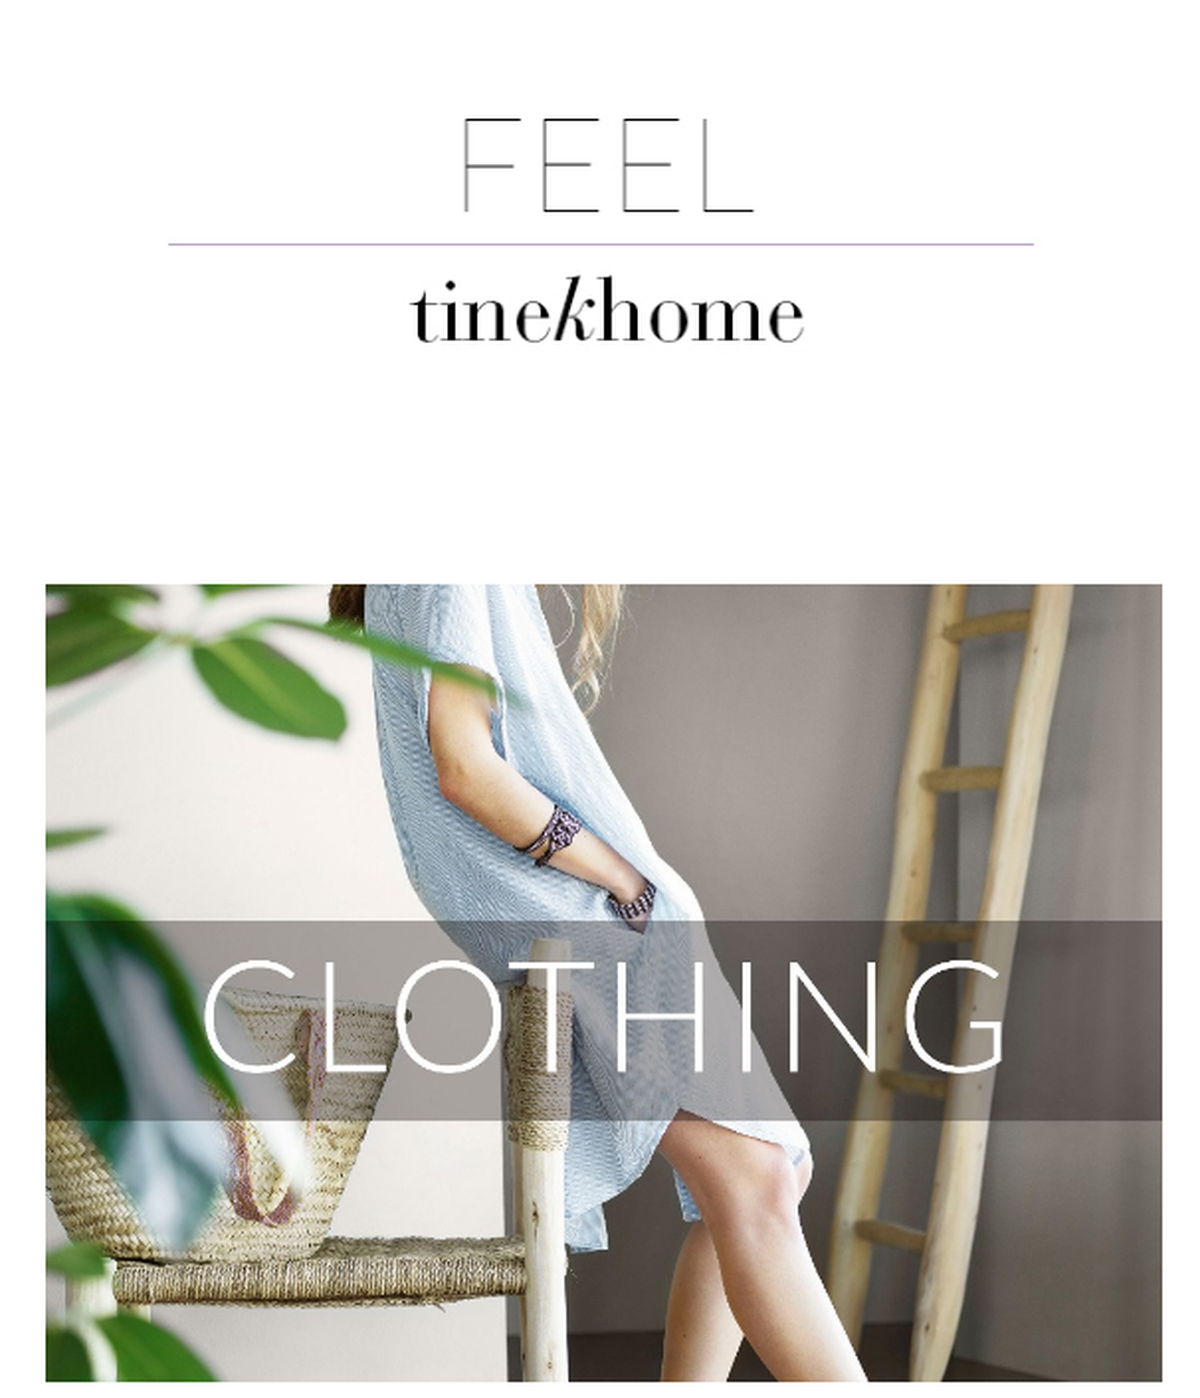 tinekhome clothing collection in Summer colors and soft fabrics